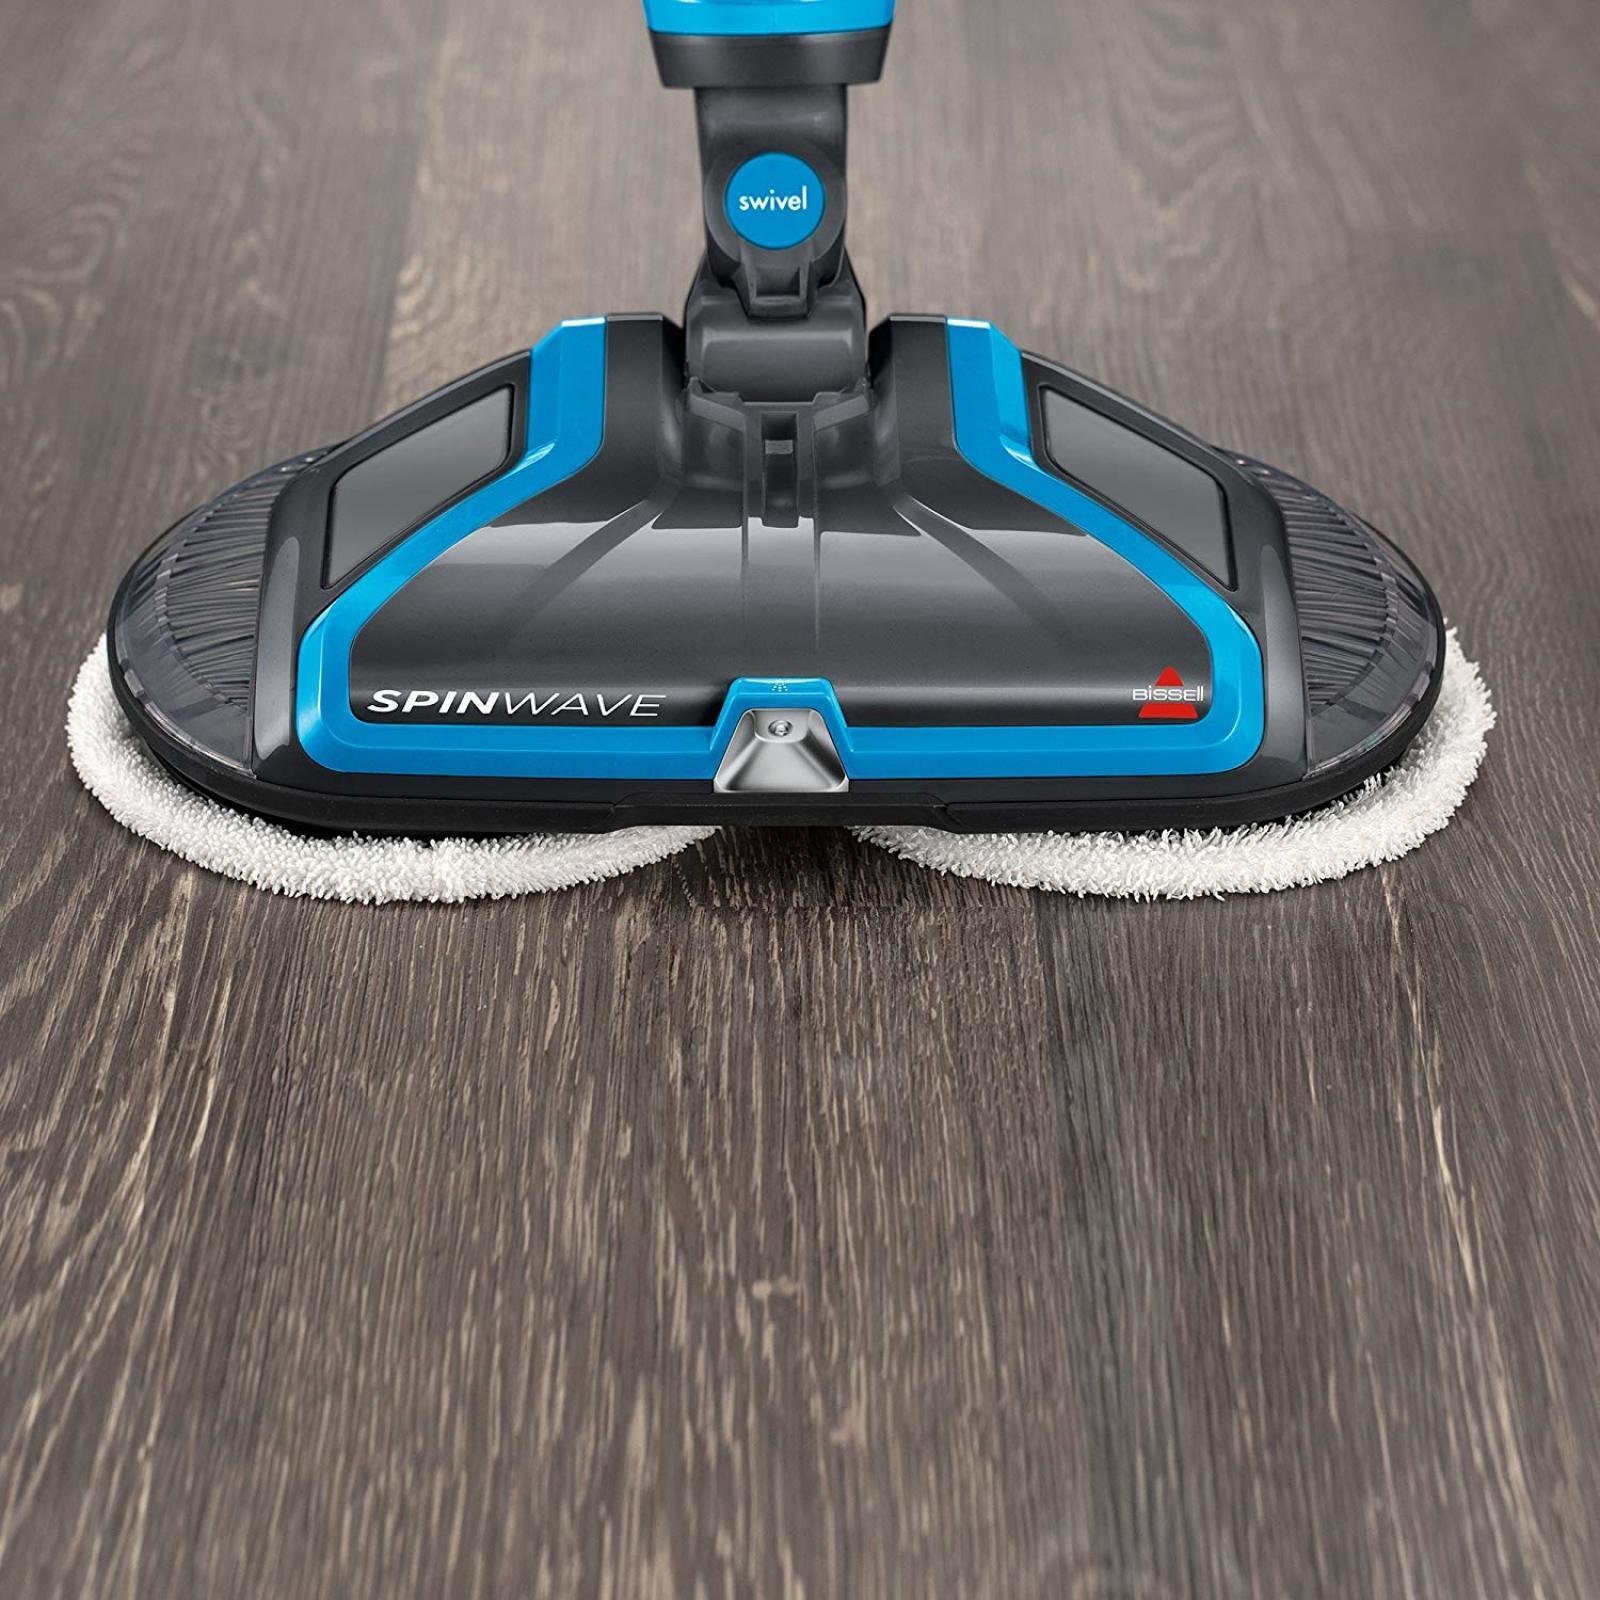 BISSELL Spinwave Plus Hard Floor Cleaner Floor Scrub Mop Sof